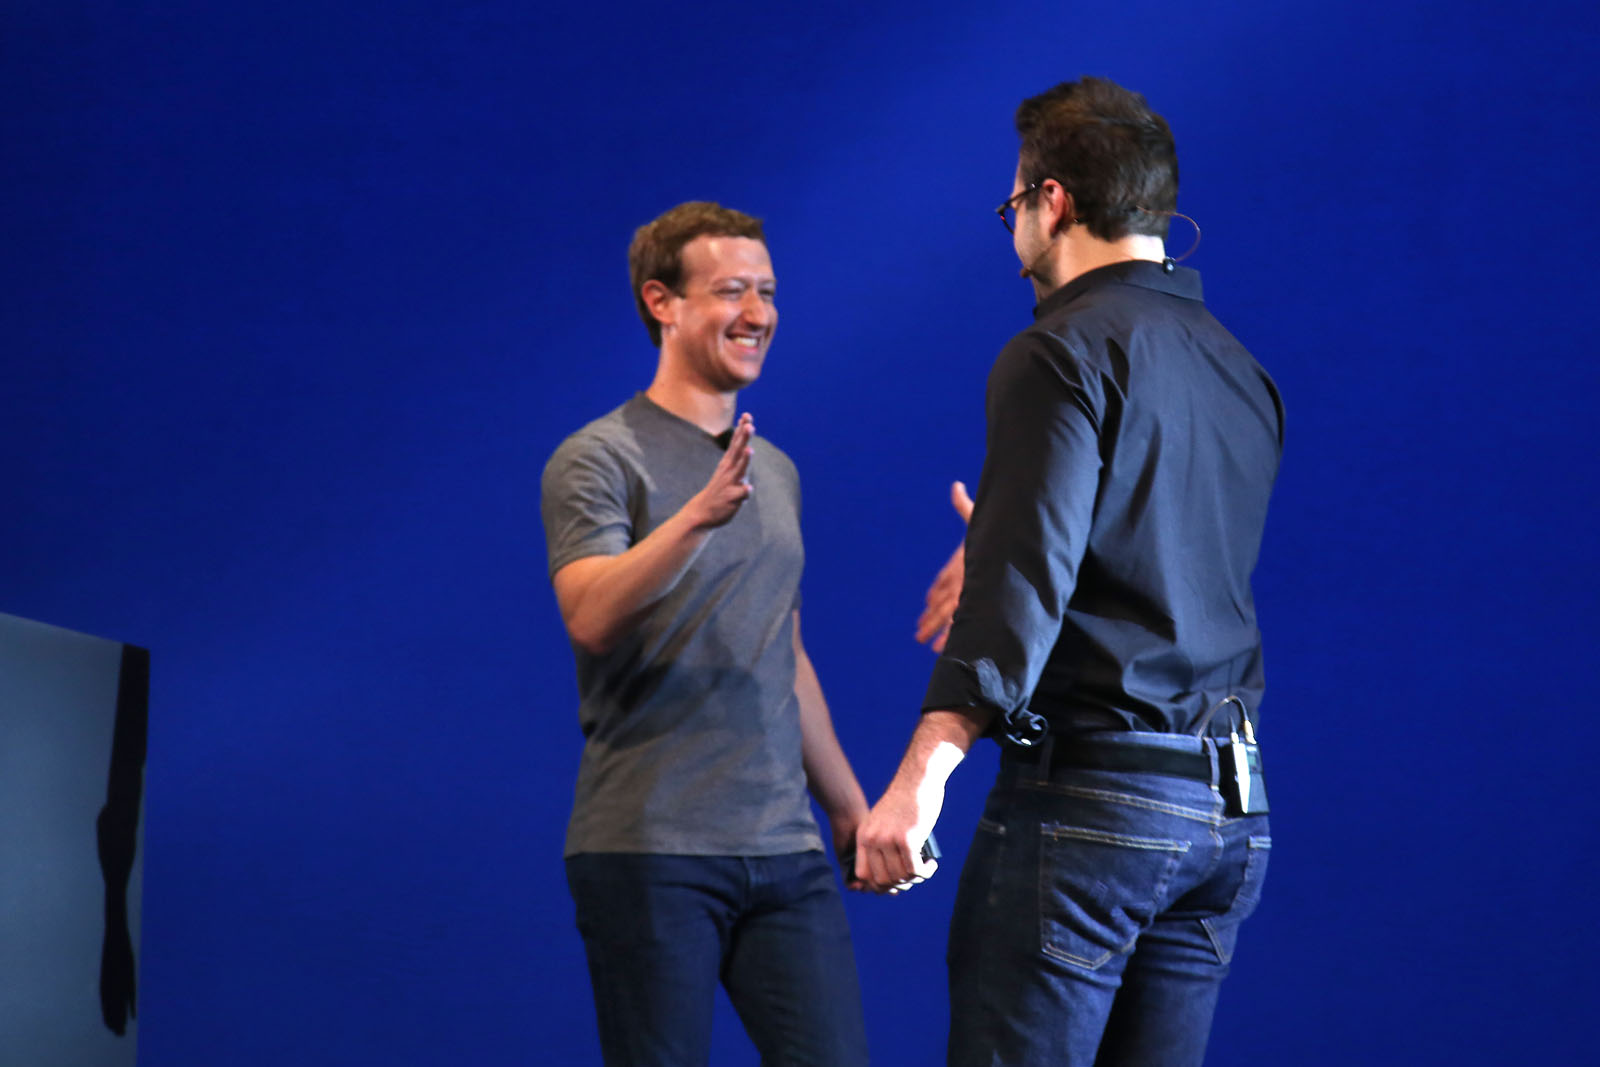 Mark Zuckerberg congratulates Oculus VR CEO Brendan Iribe at Oculus Connect.